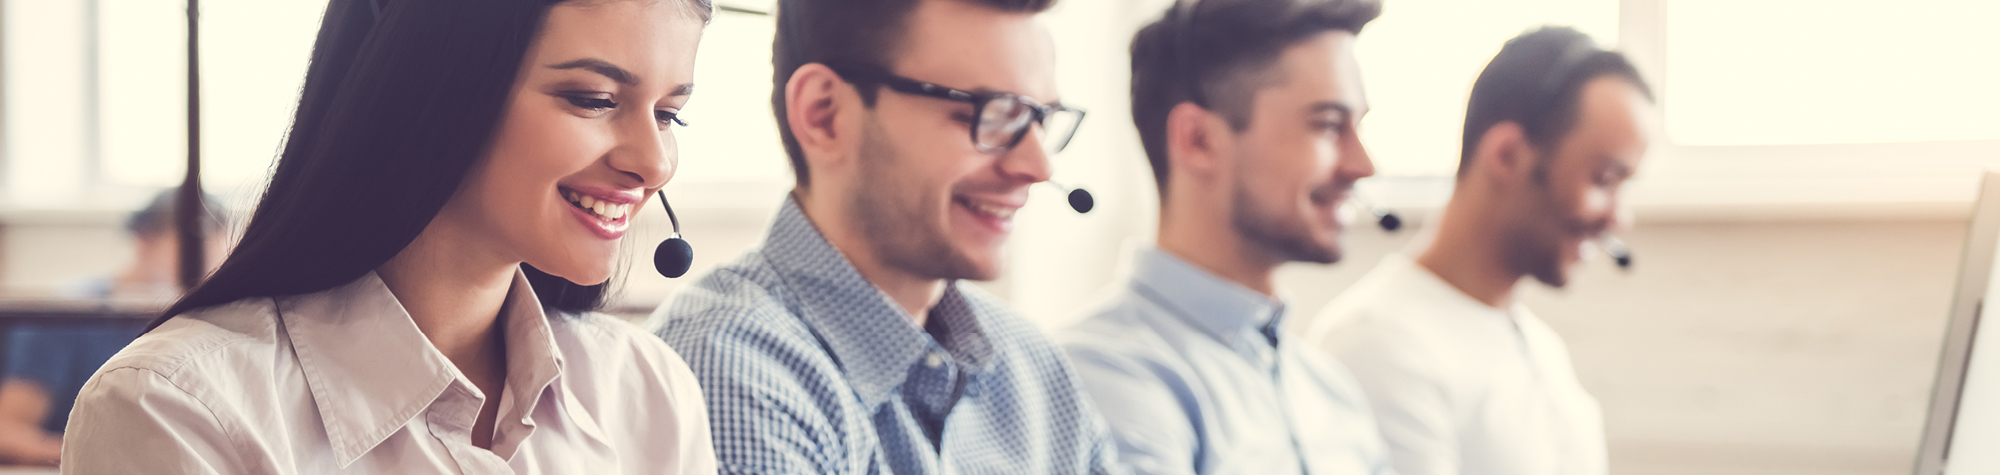 Search Consultancy Customer Service Representative Jobs Header Image. Diverse Group of Customer Service Representatives On The Phone to Exceptional Customers.